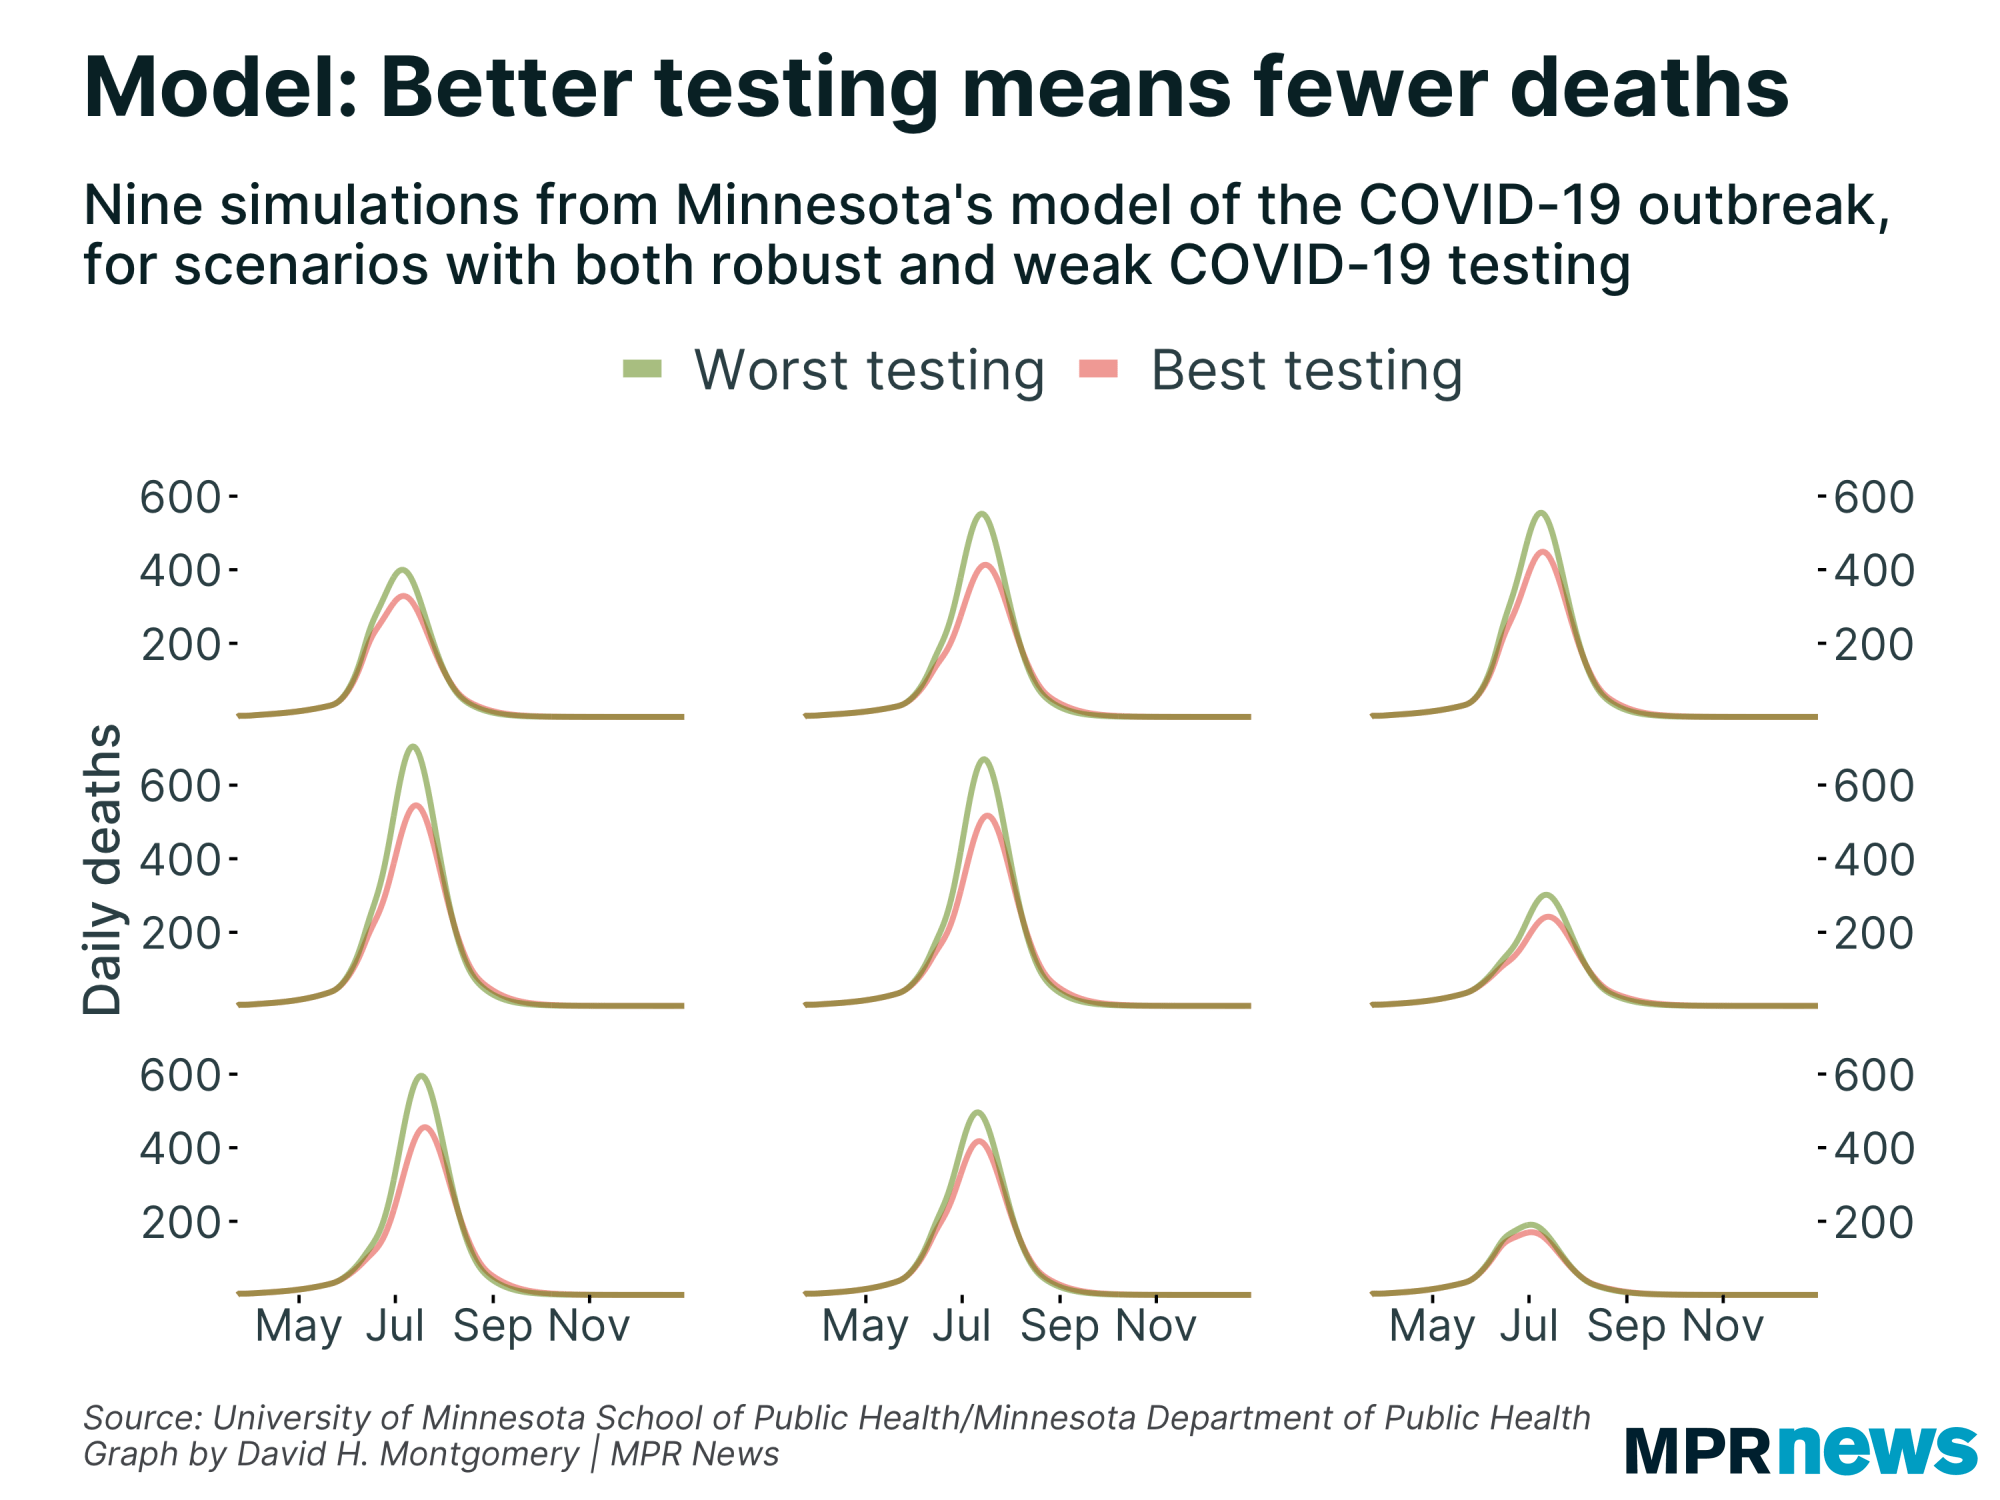 Sample simulations predict lives saved from better COVID-19 treatments